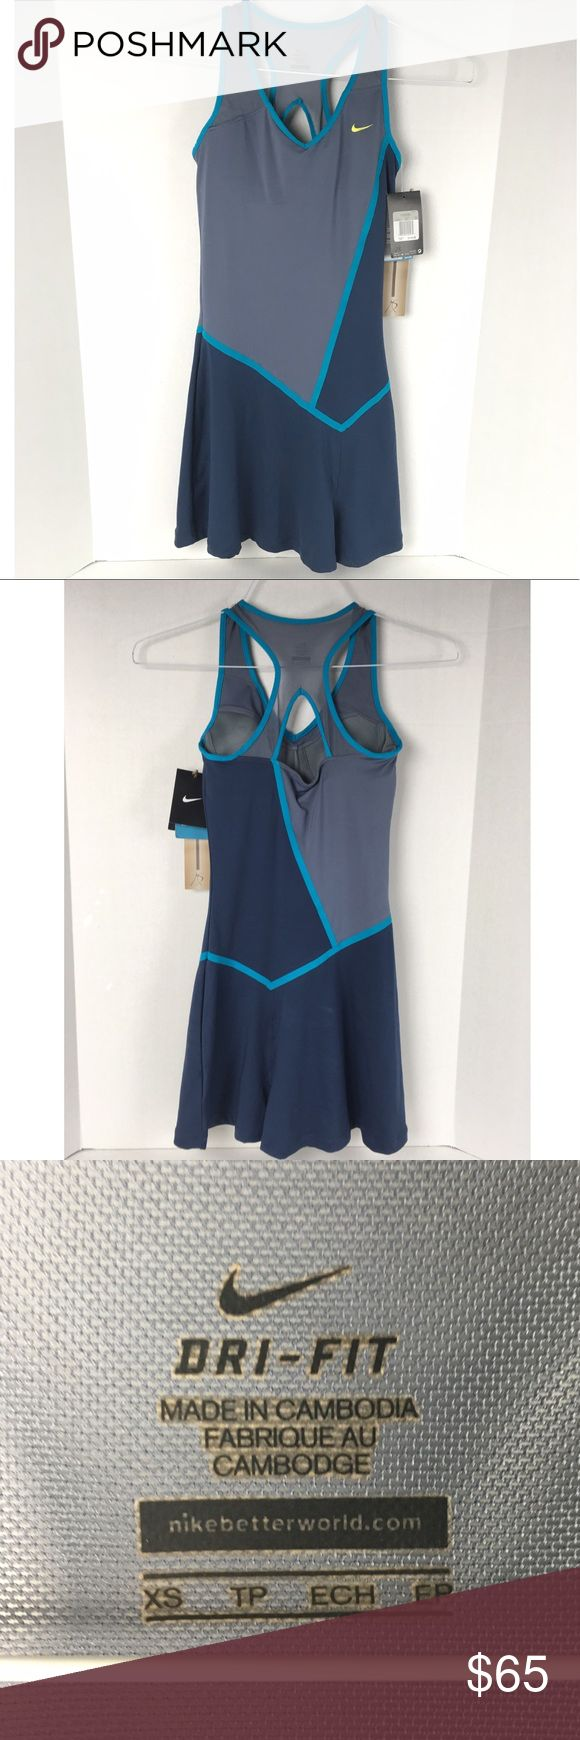 "NWT Nike Maria Sharapova Tennis Dress Brand new beautiful and sleek Nike tennis dress from the Maria Sharapova collection!!! 13"" chest with lightly padded cups; 29.5"" length. Nike Dresses"